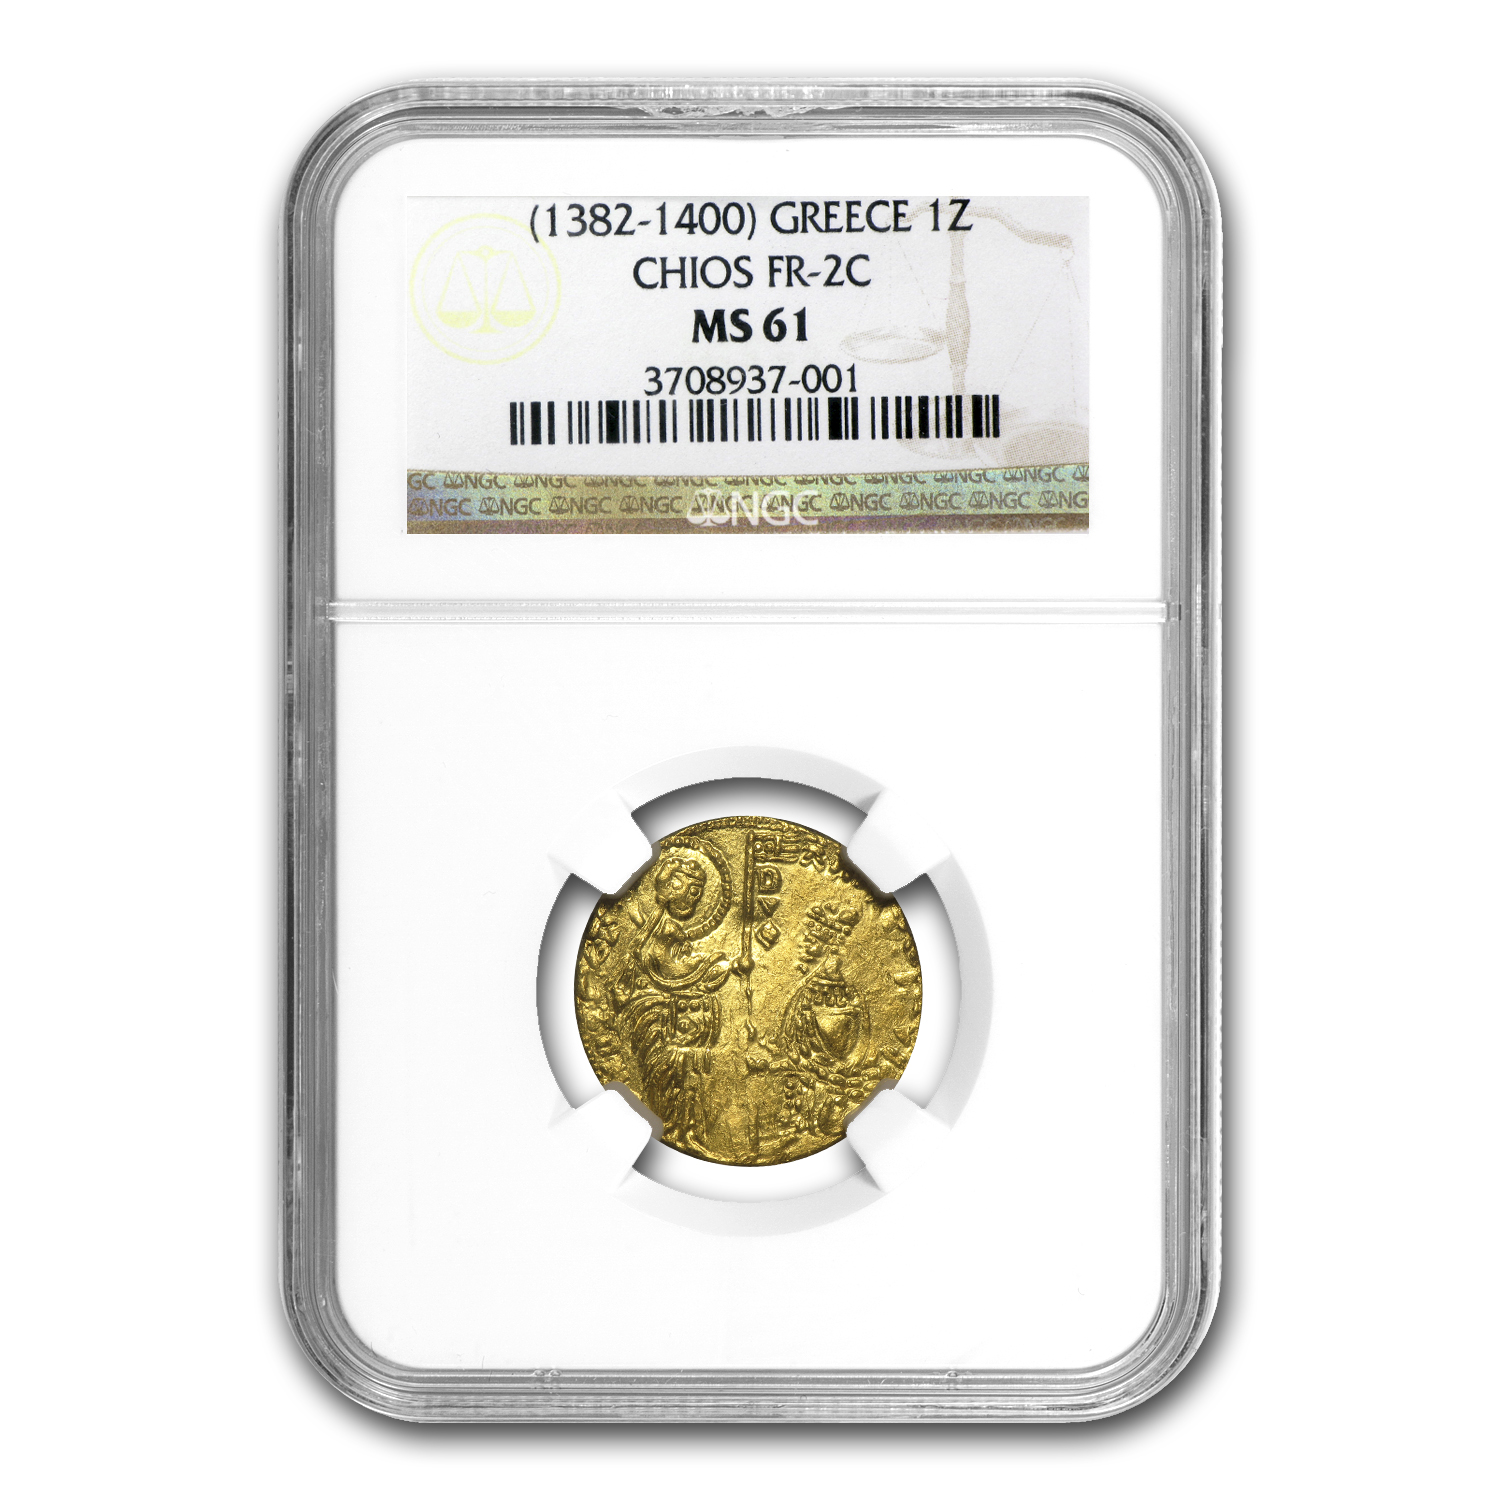 Greece Chios Gold Zecchino MS-61 NGC (1382-1400 AD)